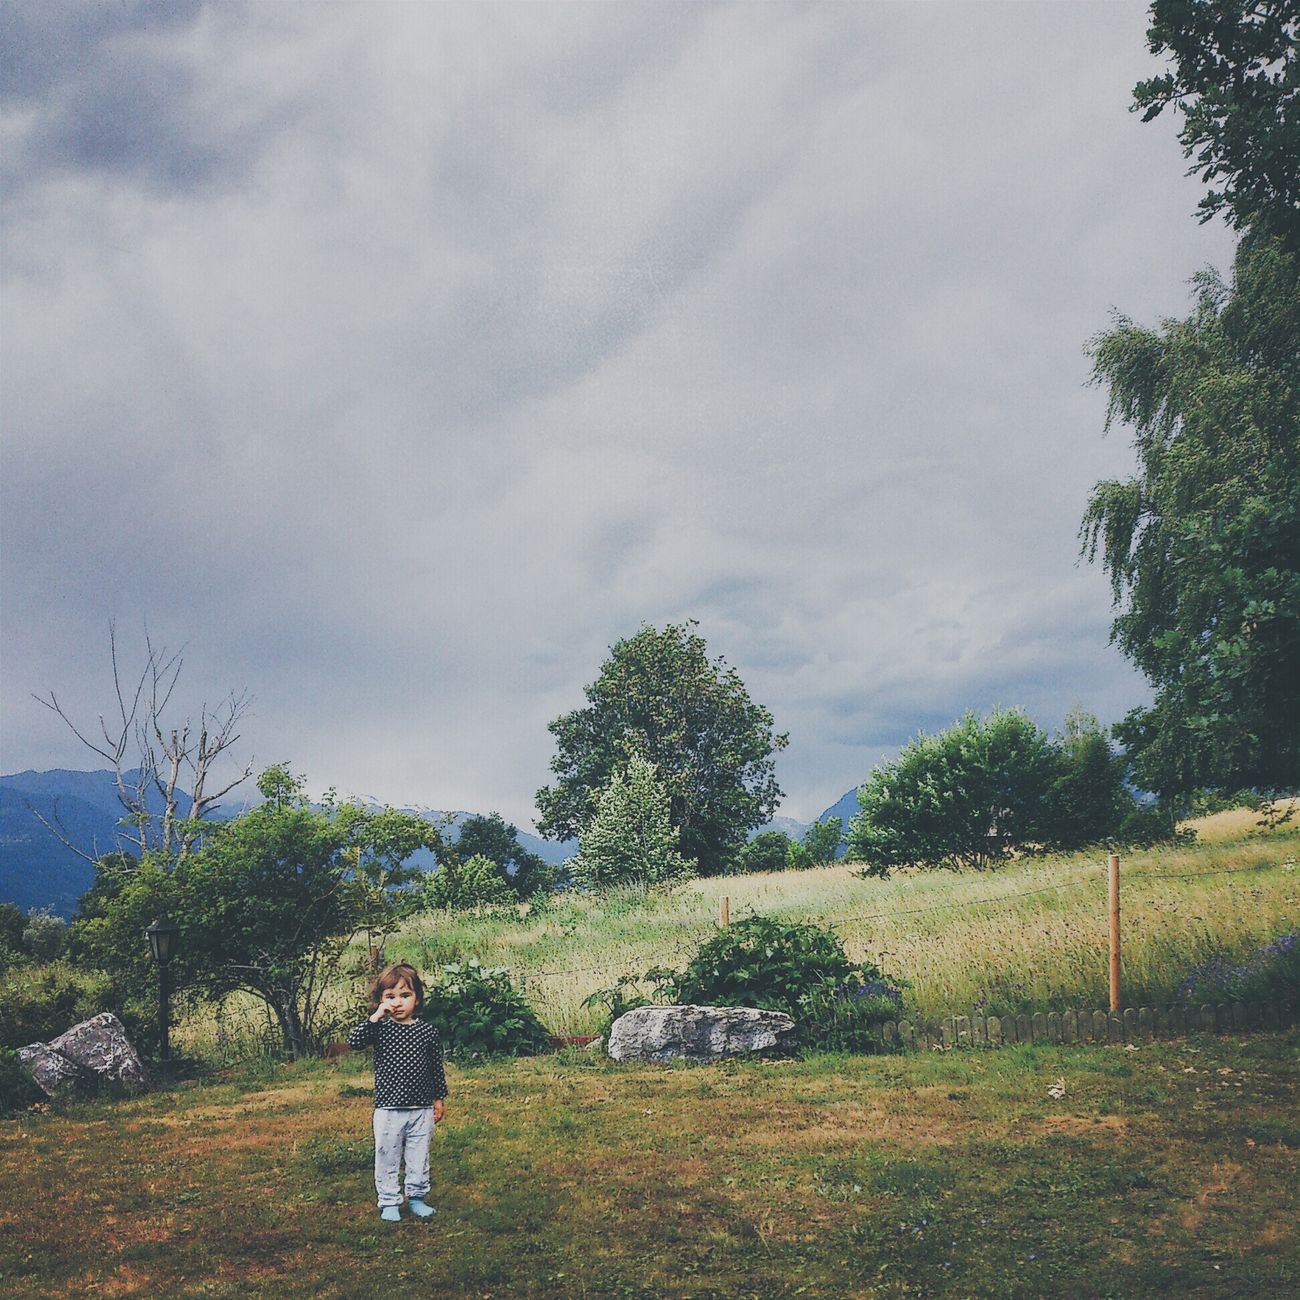 my giRl in ouR gaRden iN switzeRland befoRe Rain Hello World AMPt_community People Watching Taking Photos